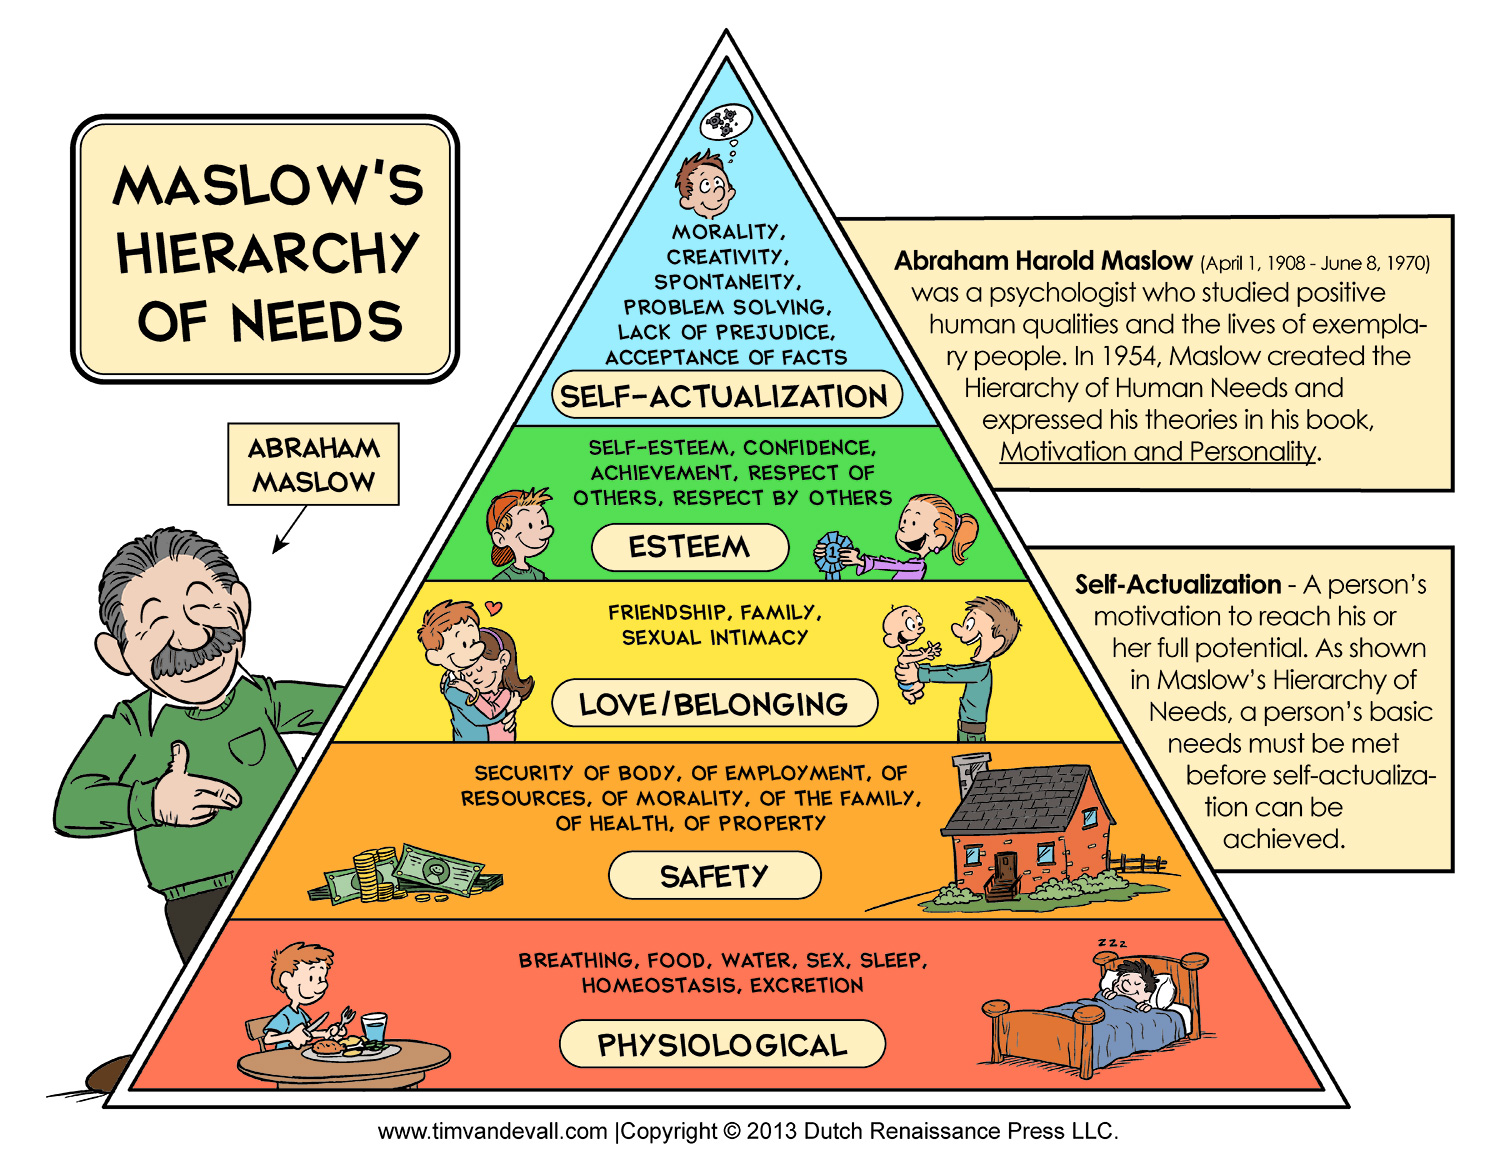 Kinda Cheesy but gets the job done! Thanks Tim @ http://timvandevall.com/printable-maslows-hierarchy-of-needs-chart/